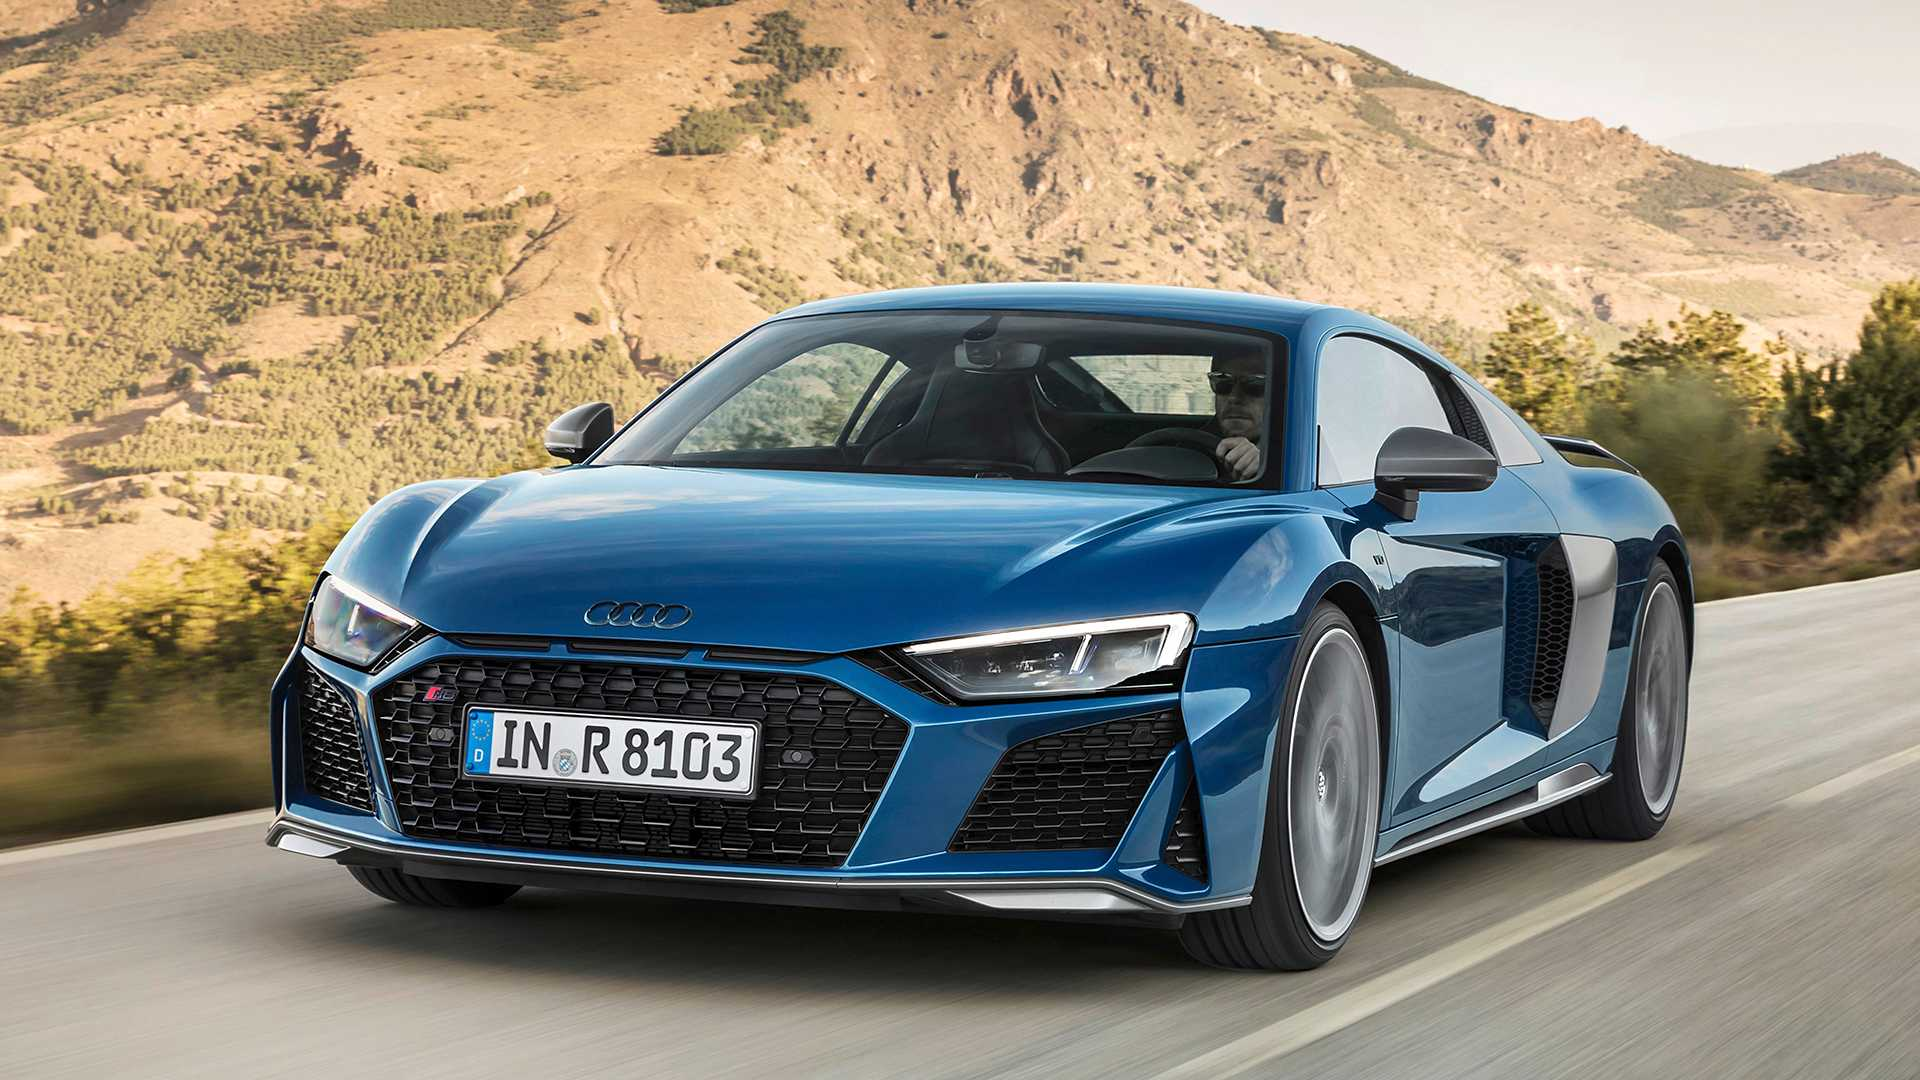 93 Great 2019 Audi R8 Research New by 2019 Audi R8